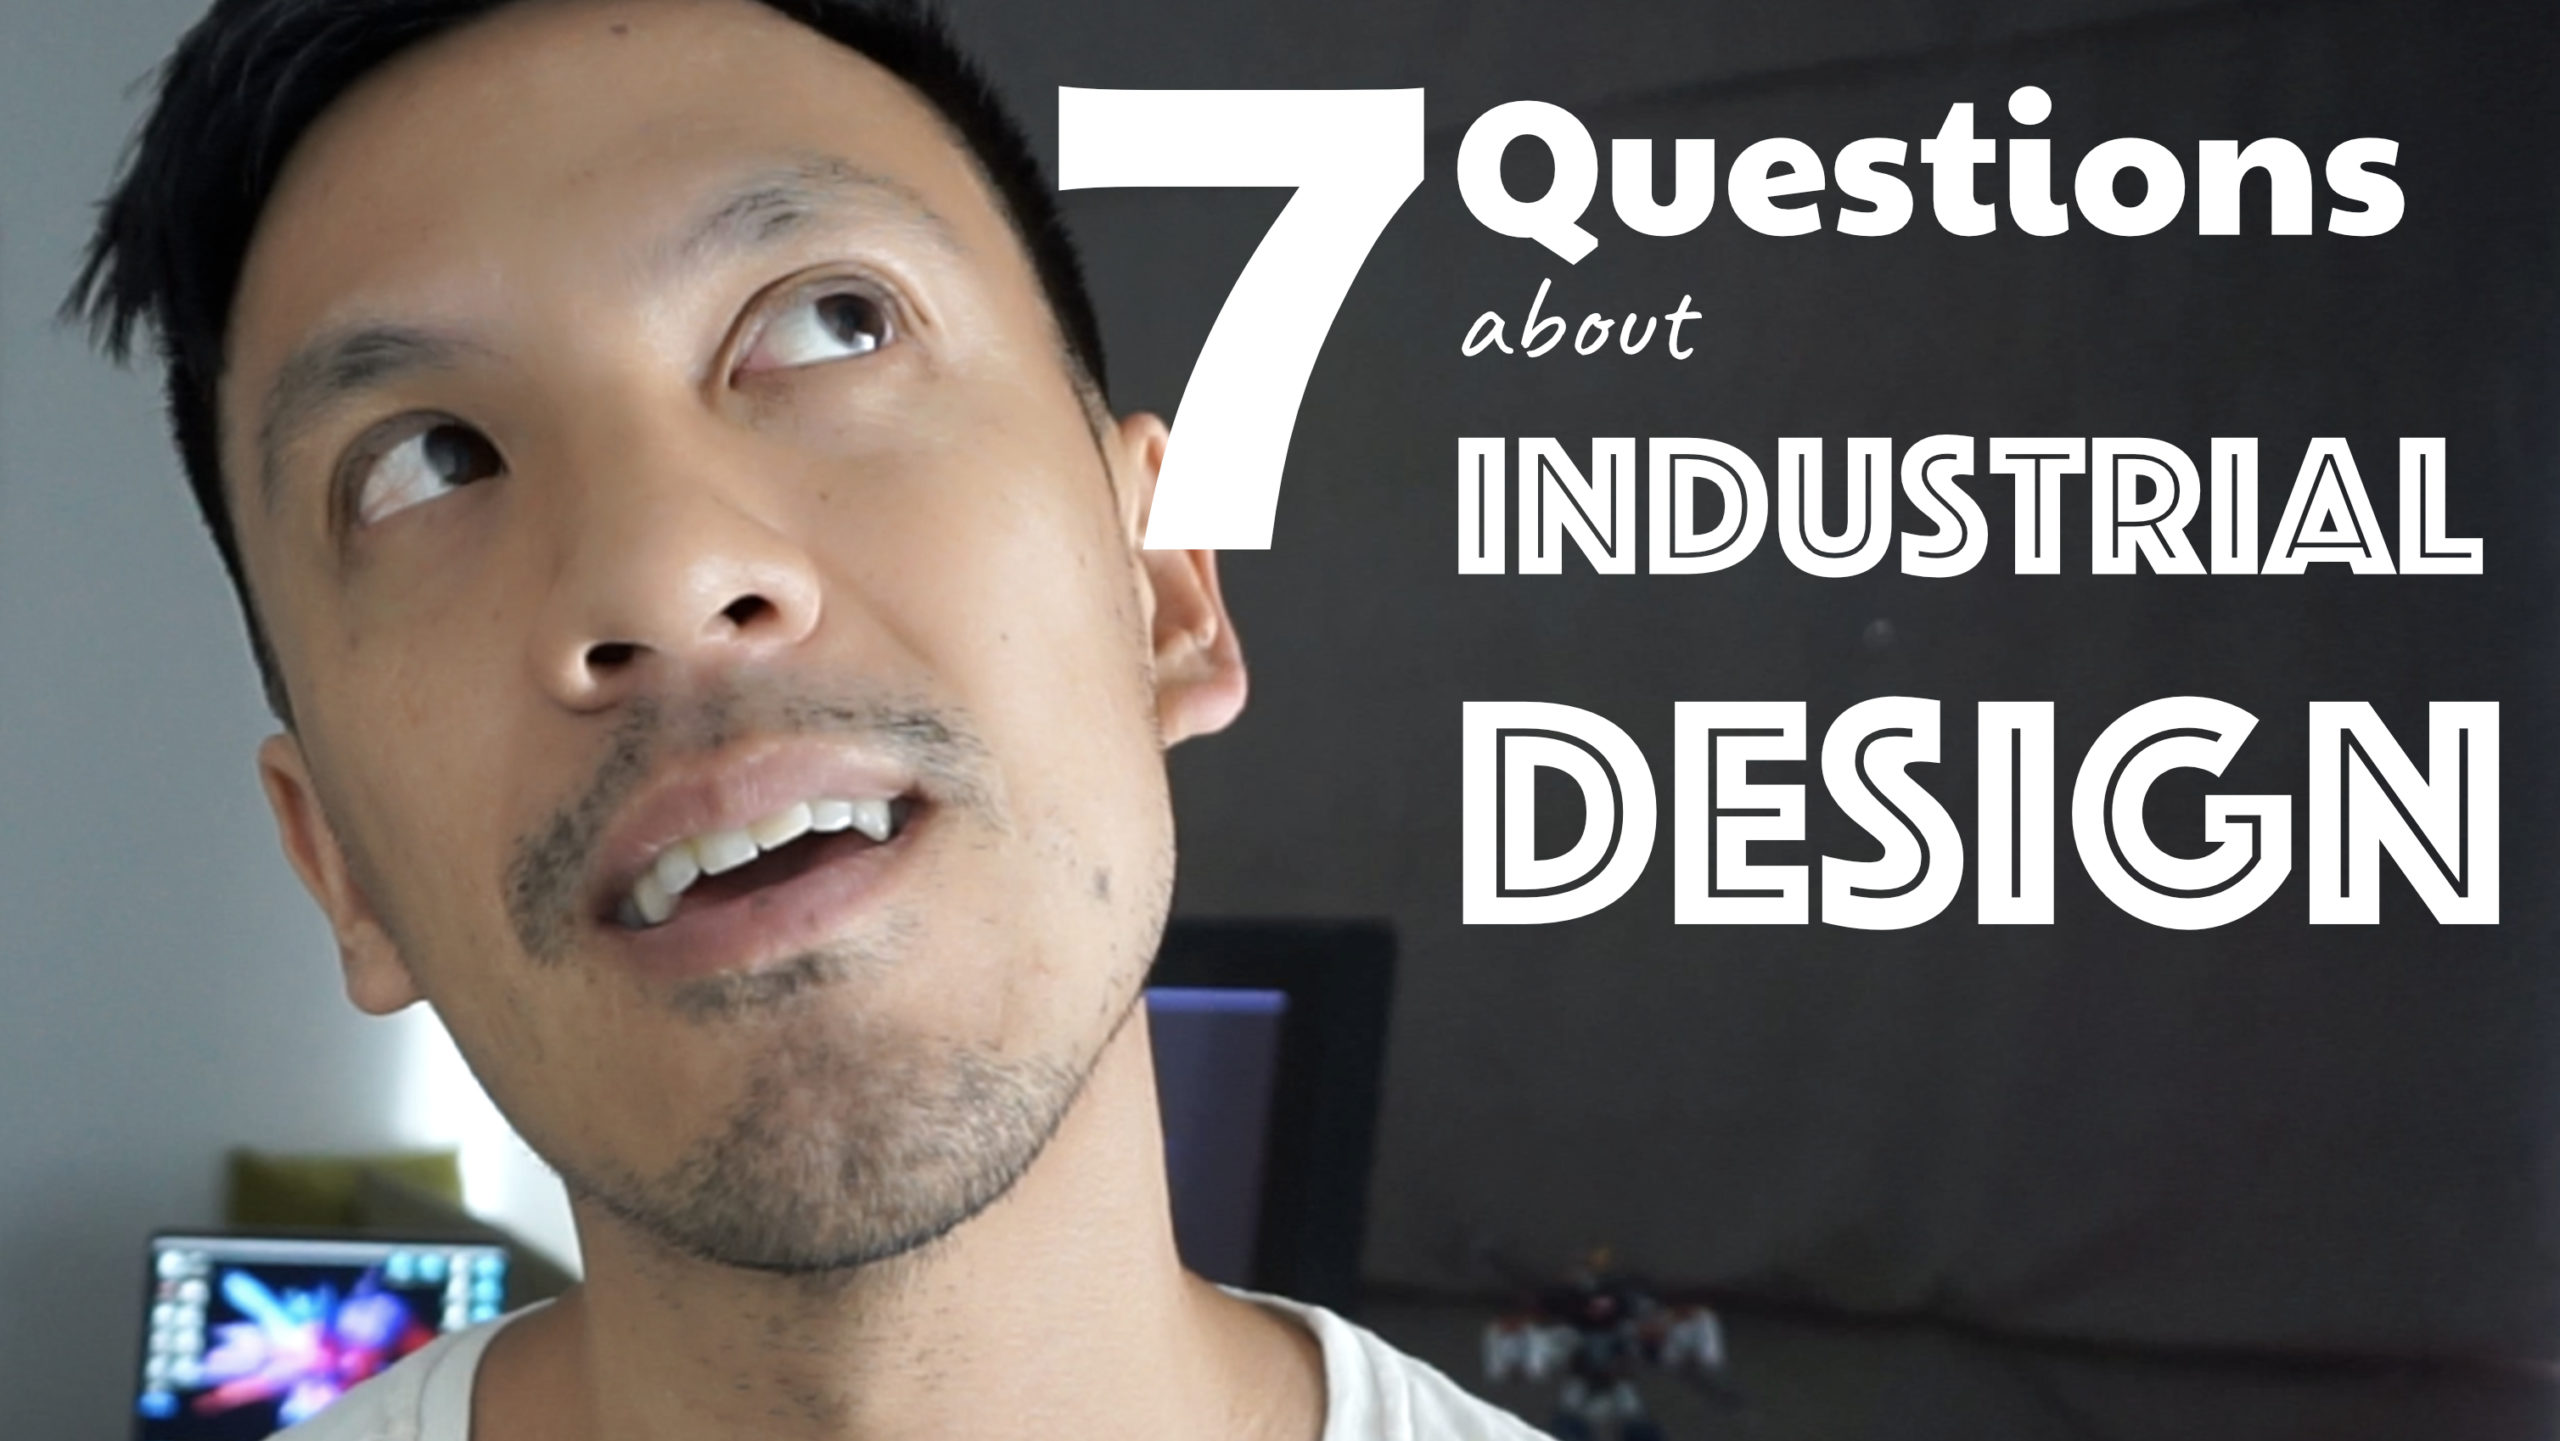 How To Become An Industrial Designer The Design Sketchbook,Bathroom Designs For Long Narrow Spaces